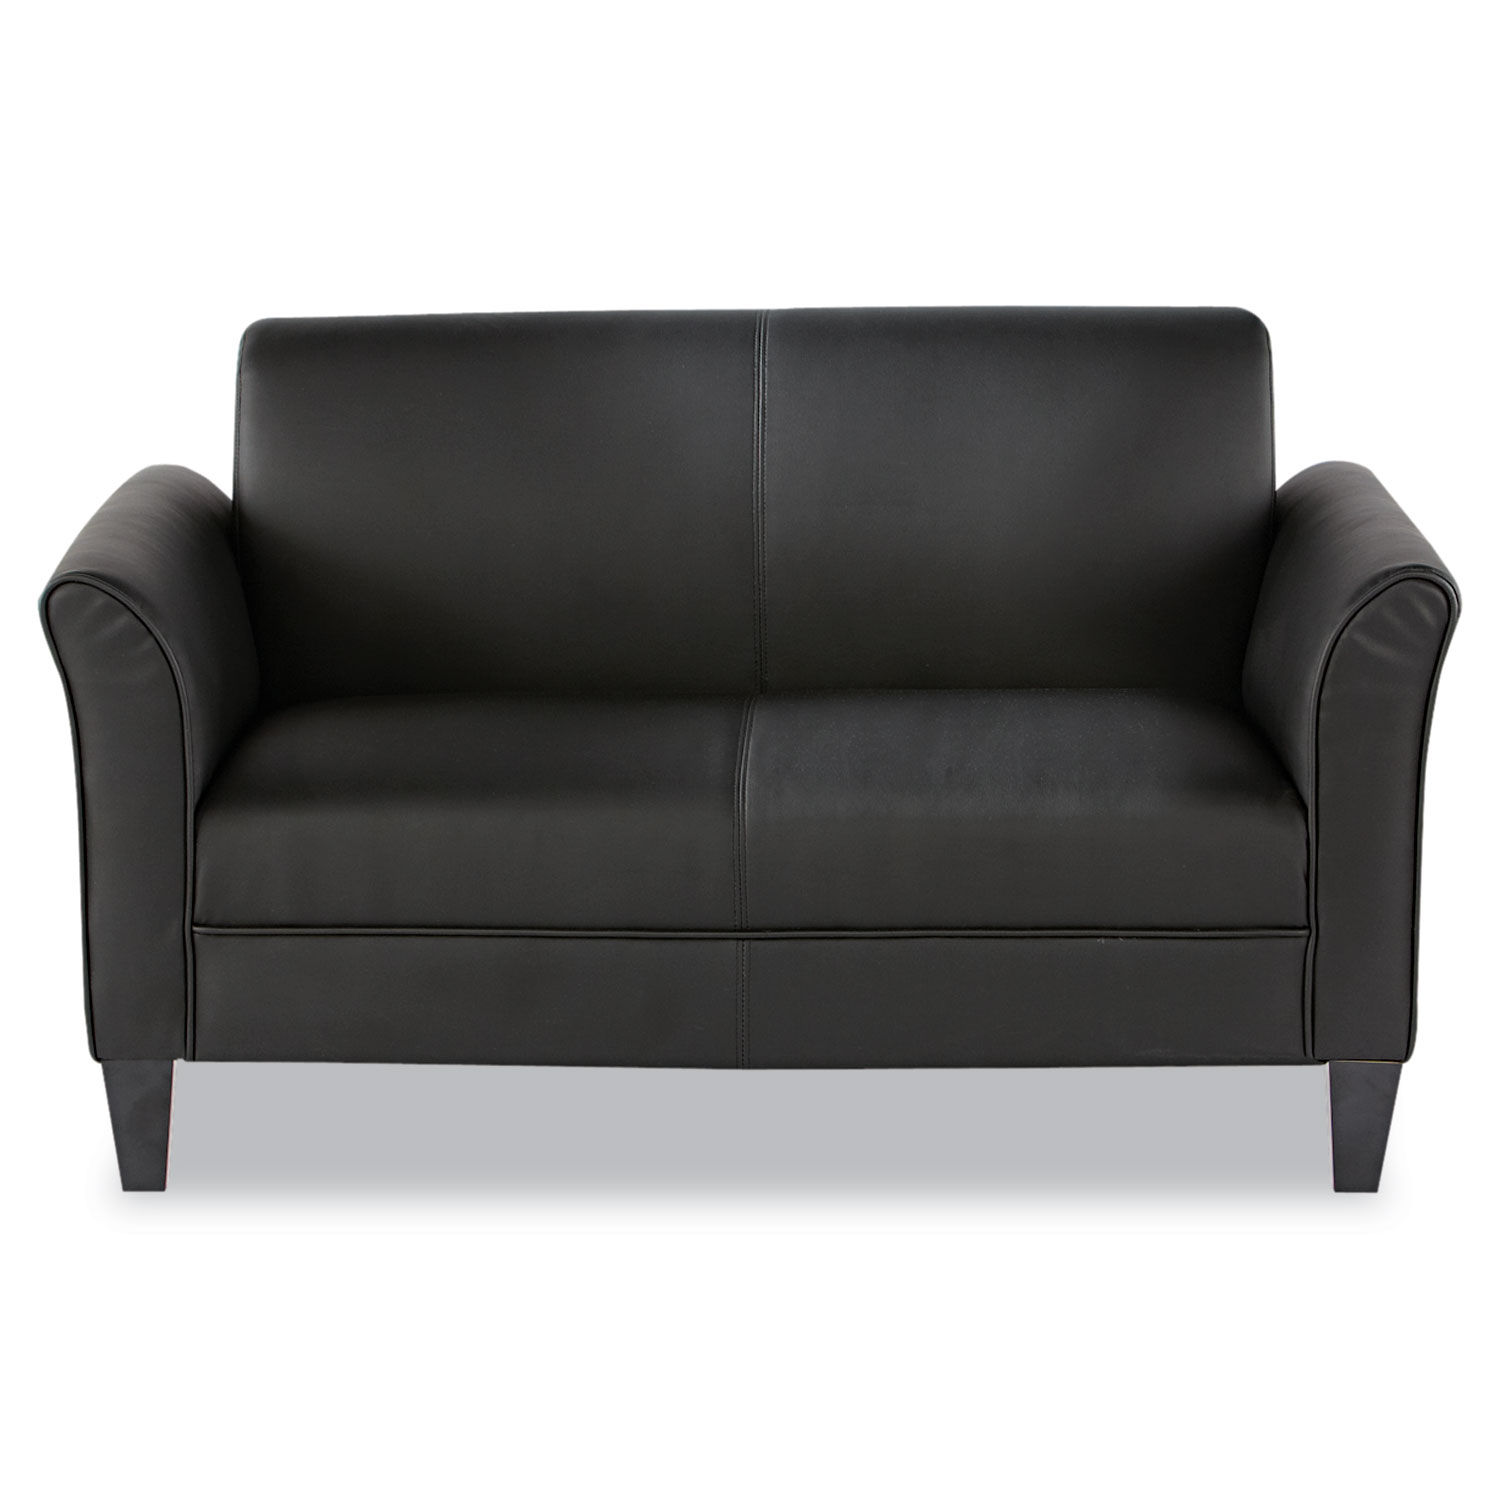 Astonishing Alera Reception Lounge Furniture Loveseat 55 1 2W X 31 1 2D X 32H Black Gmtry Best Dining Table And Chair Ideas Images Gmtryco